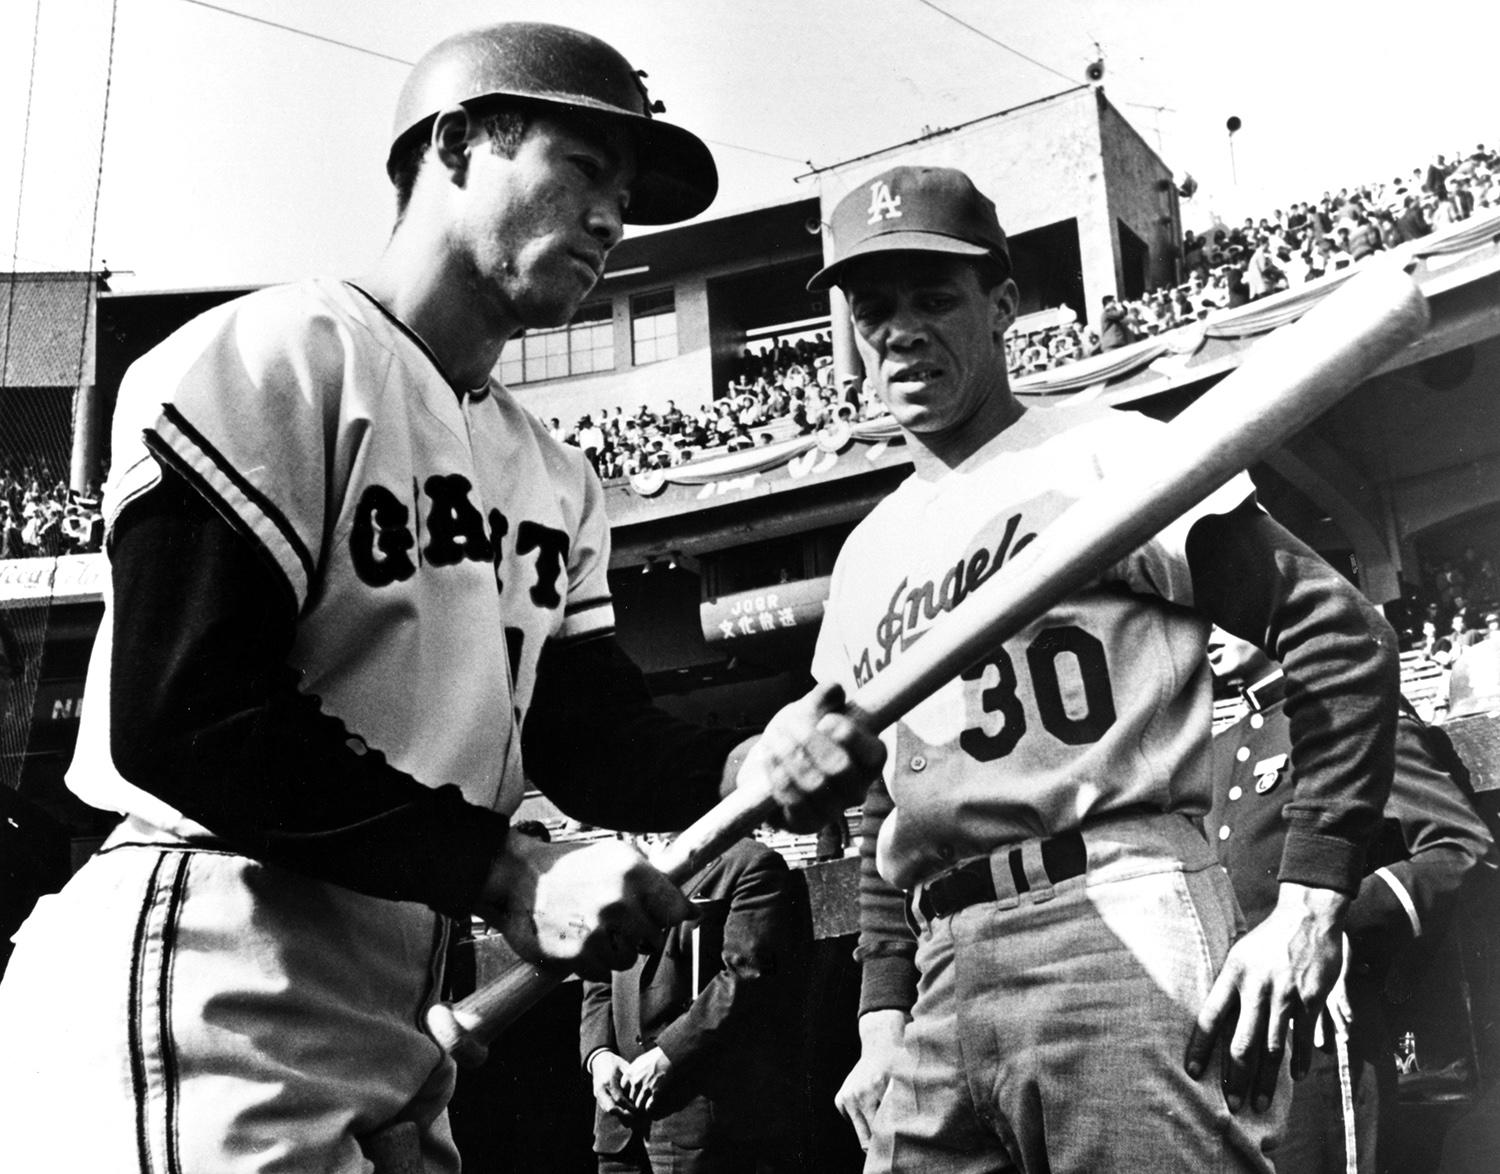 """Pictured above, Maury Wills of the Los Angeles Dodgers (right) talks to a Japanese baseball player during the Dodgers tour of Japan following the 1966 season. Wills embarked on the 1966 tour, but had to leave early for a treatment on his injured leg. <a href=""""http://collection.baseballhall.org/islandora/object/islandora%3A273641"""">PASTIME</a> (National Baseball Hall of Fame)"""